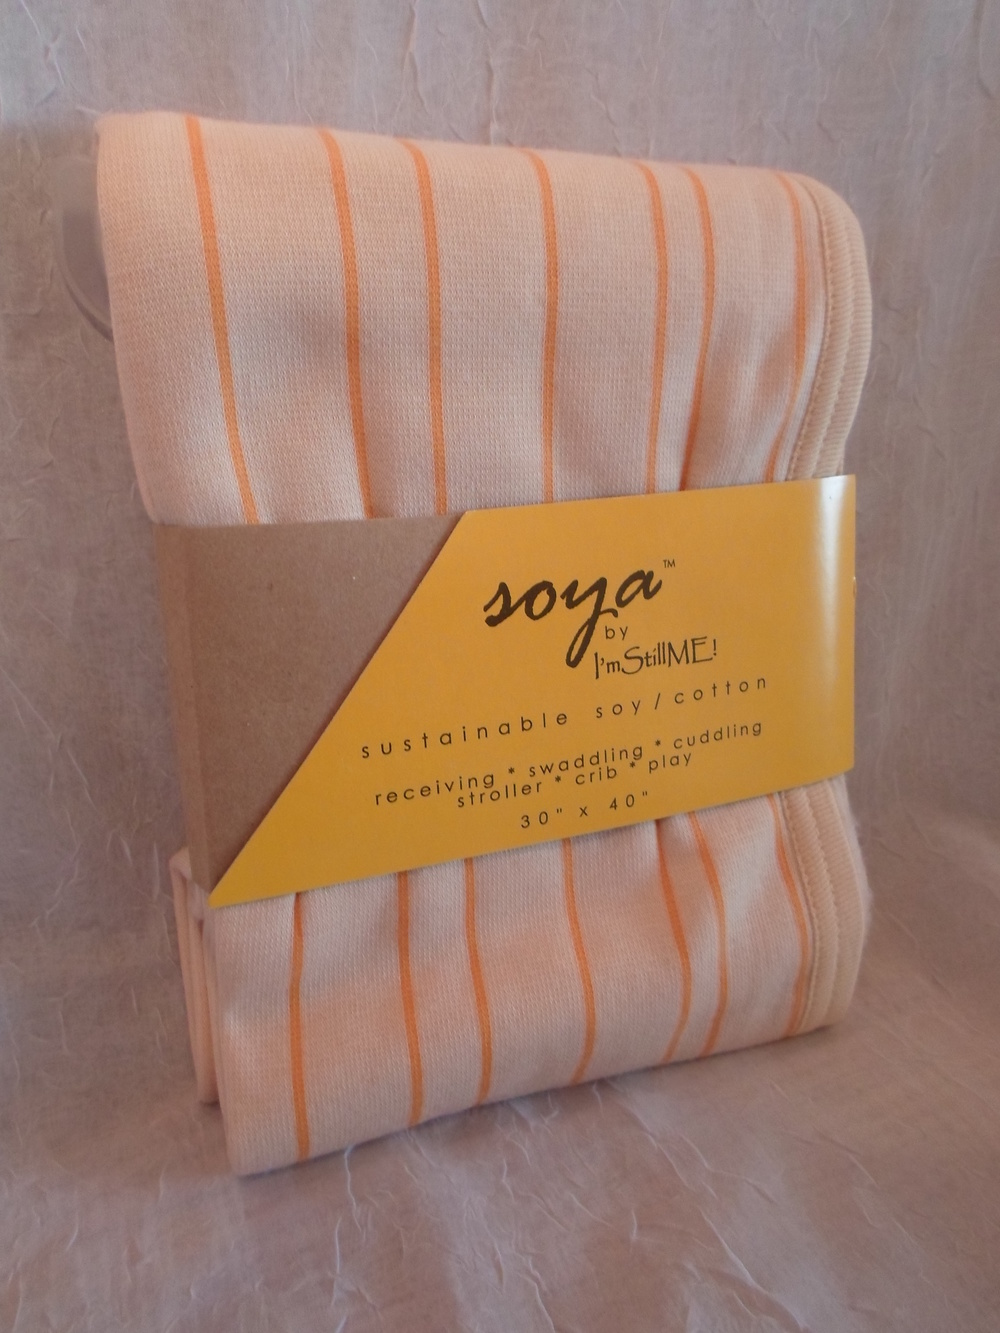 Soya Blanket $29.95 Wants 1 PURCHASED